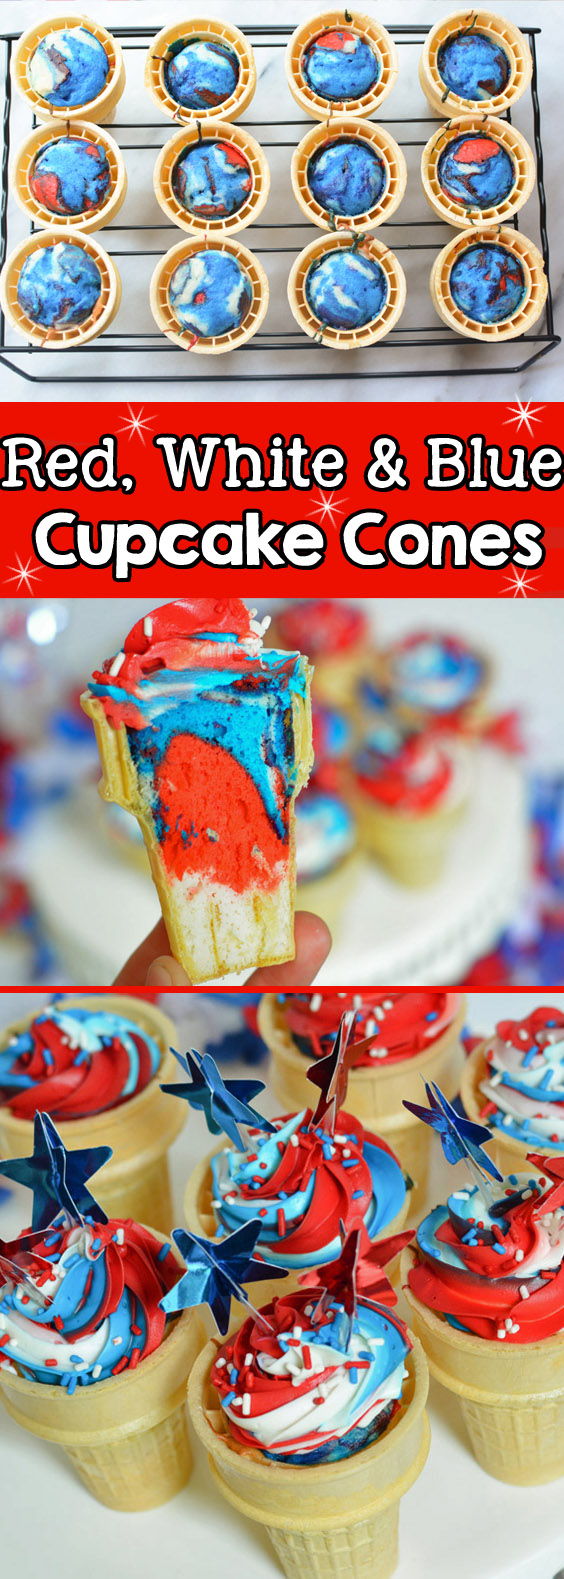 red white and blue cupcake cones